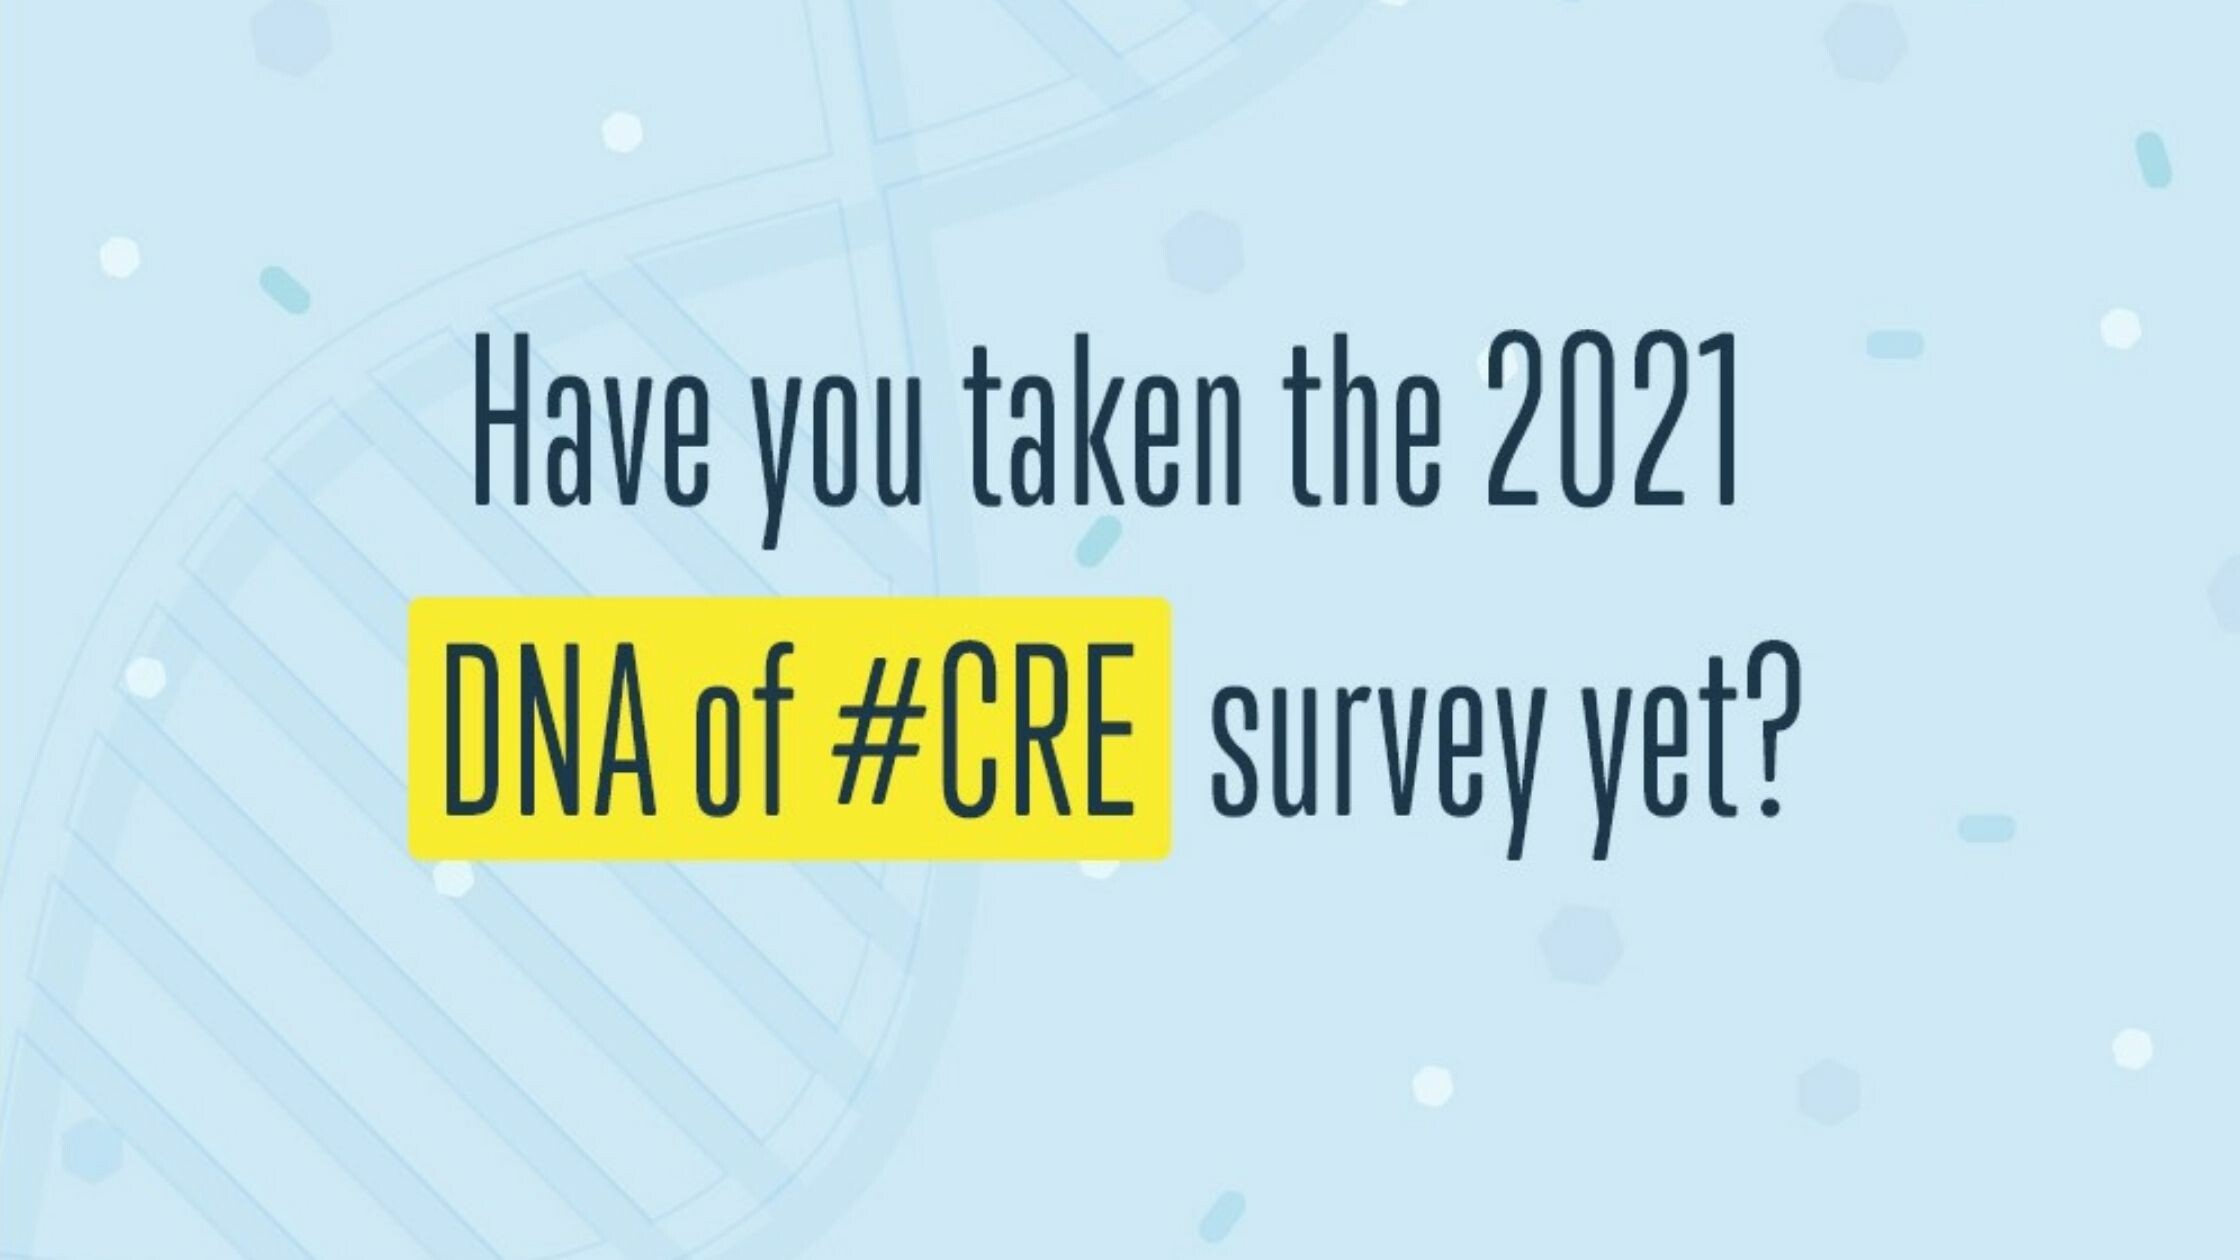 Top 10 Reasons You Should Take the DNA of #CRE Survey